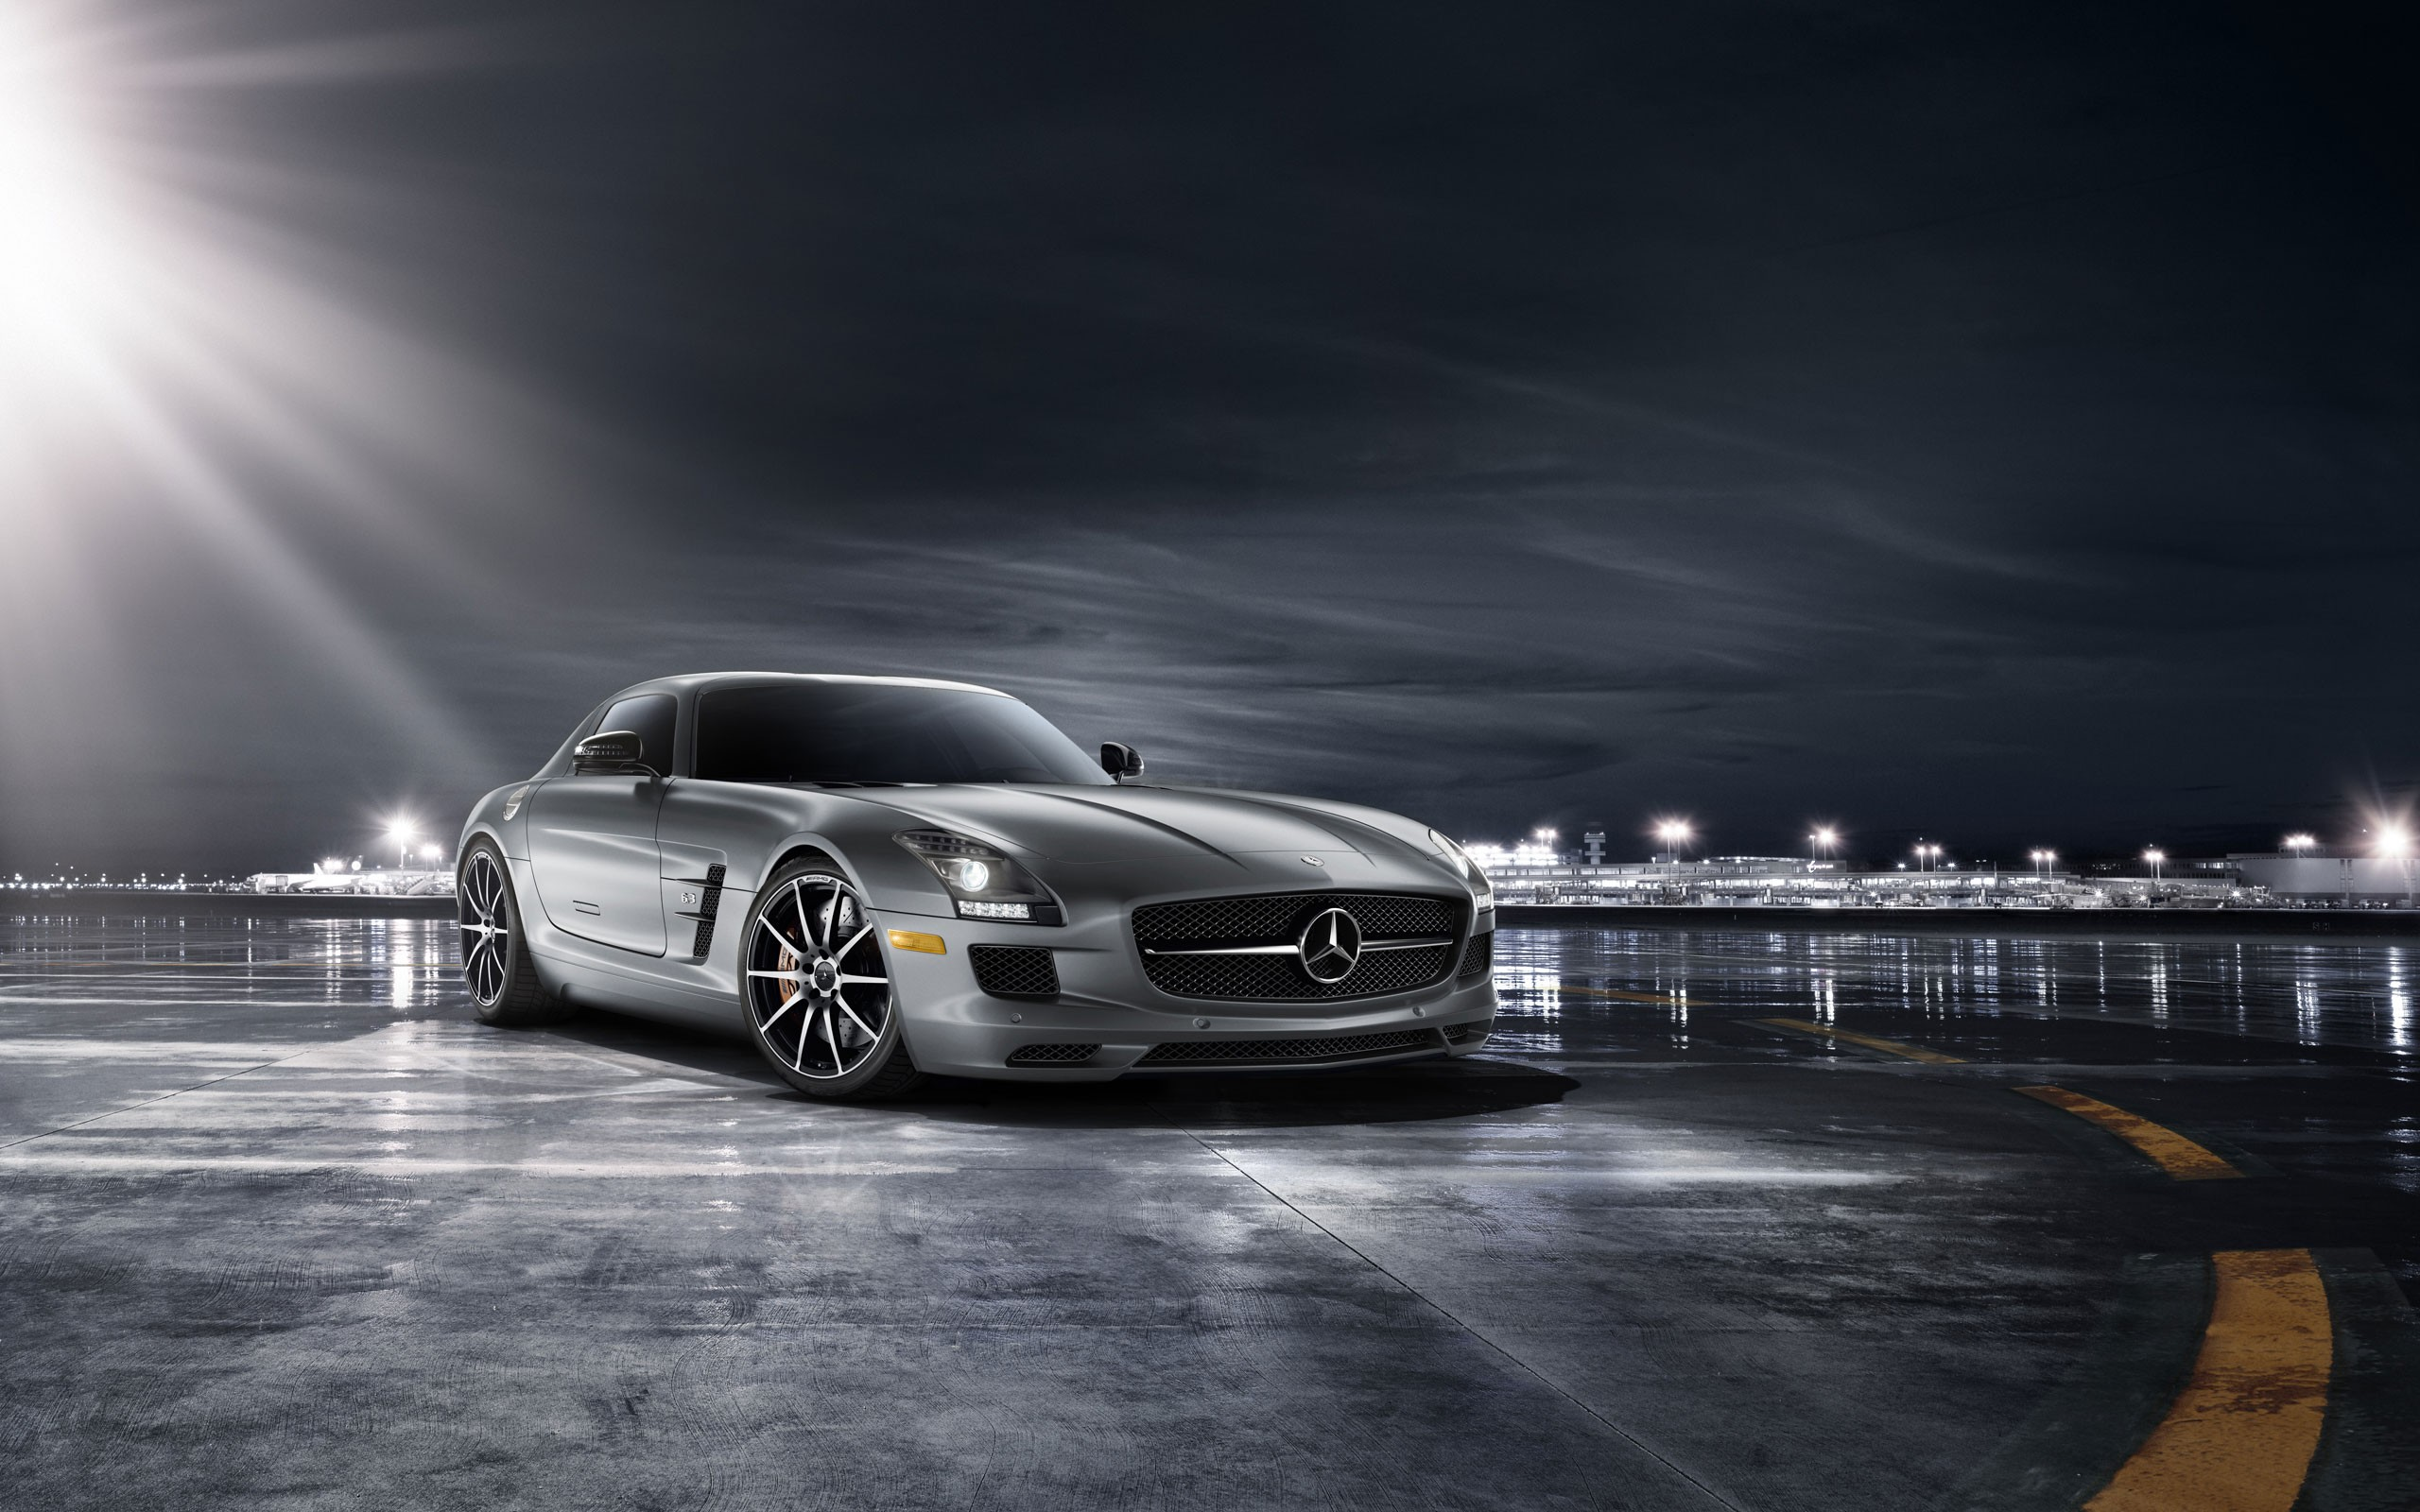 Daily Wallpaper Mercedes Sls Amg I Like To Waste My Time